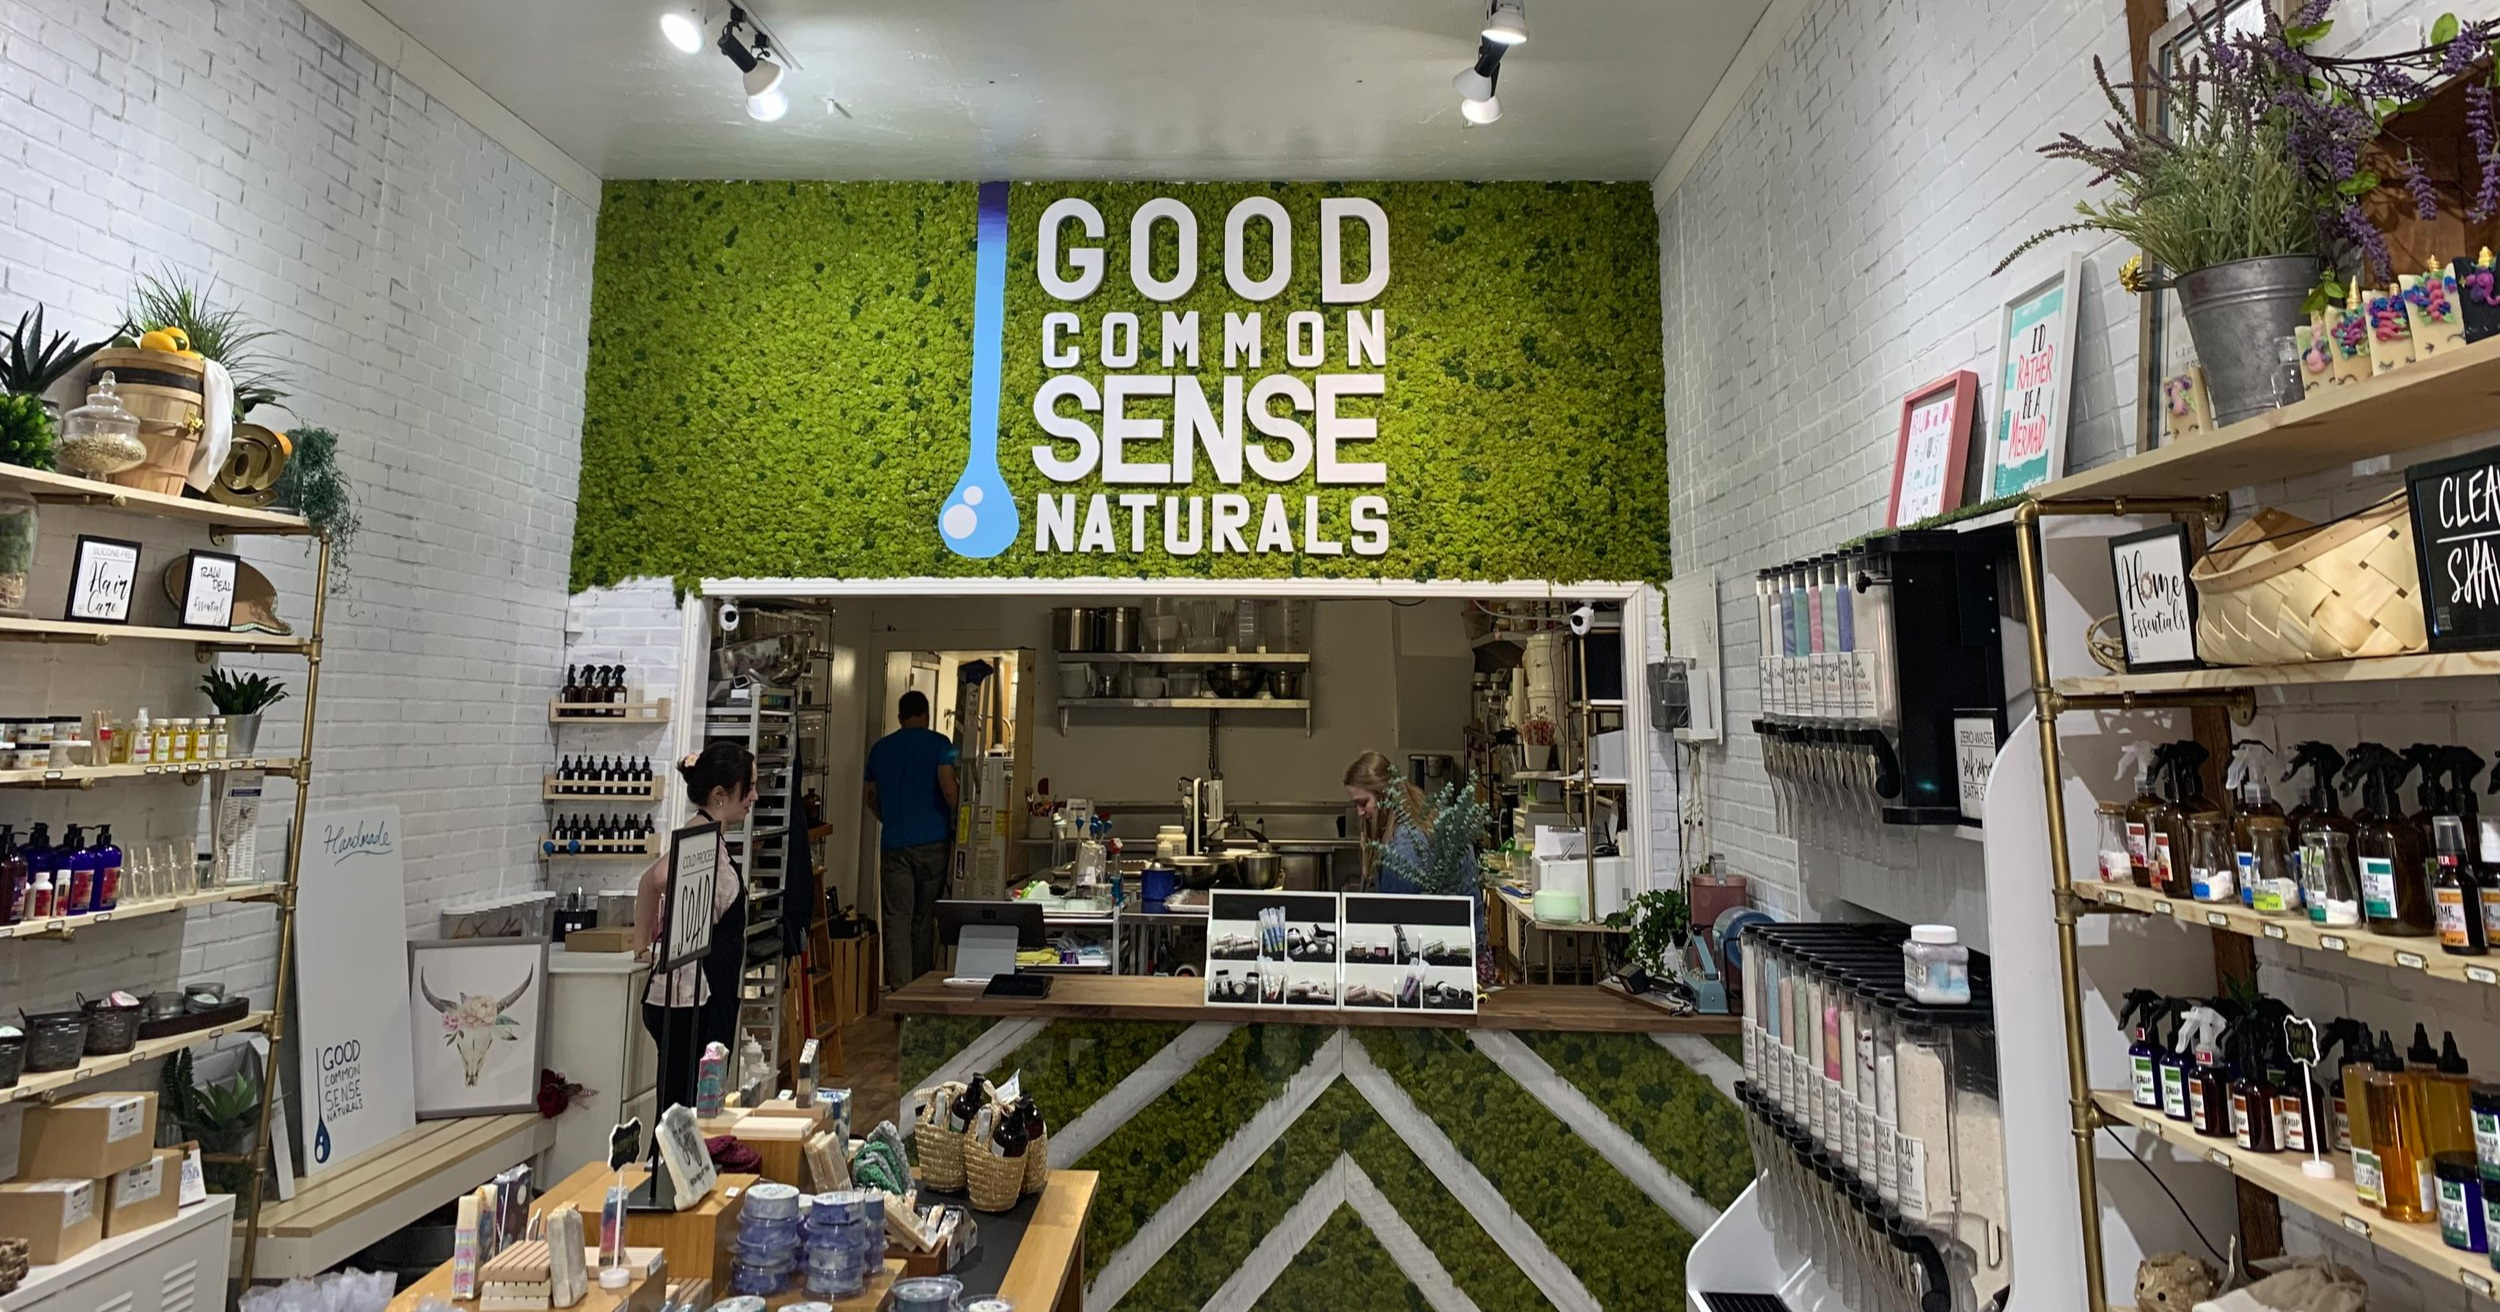 Good Common Sense Naturals' new live wall always makes me smile.